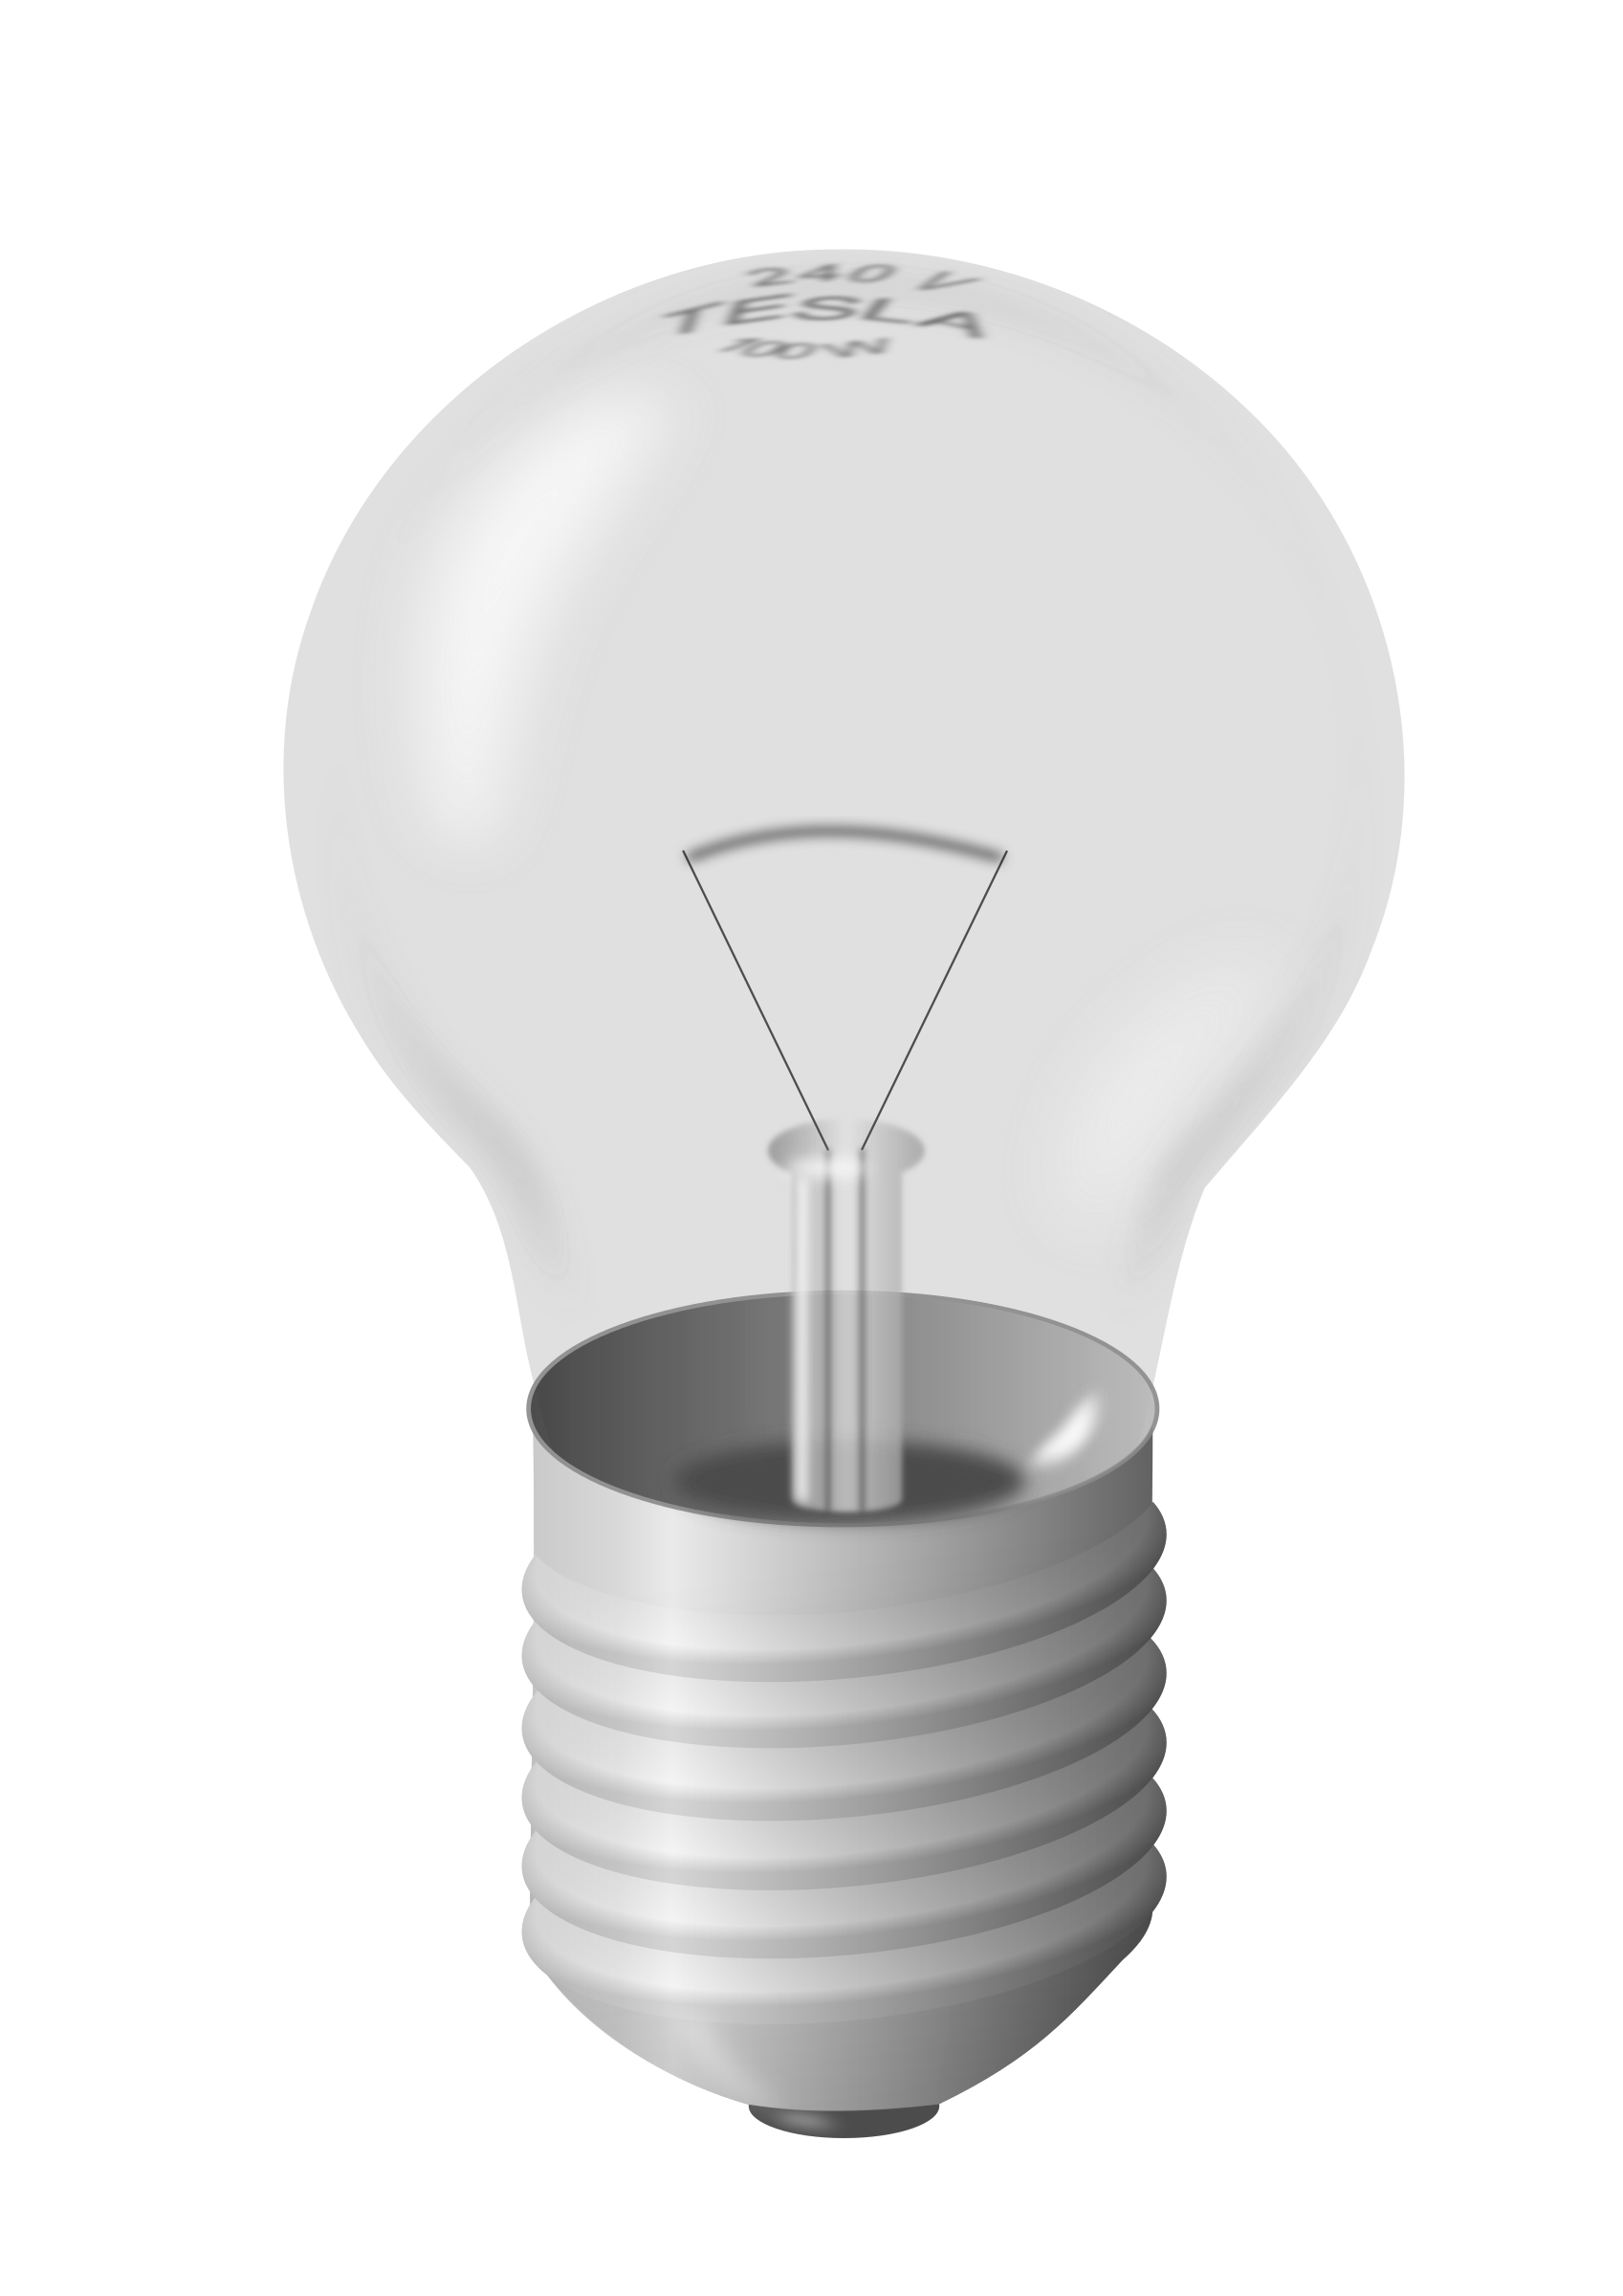 light bulb by jarda